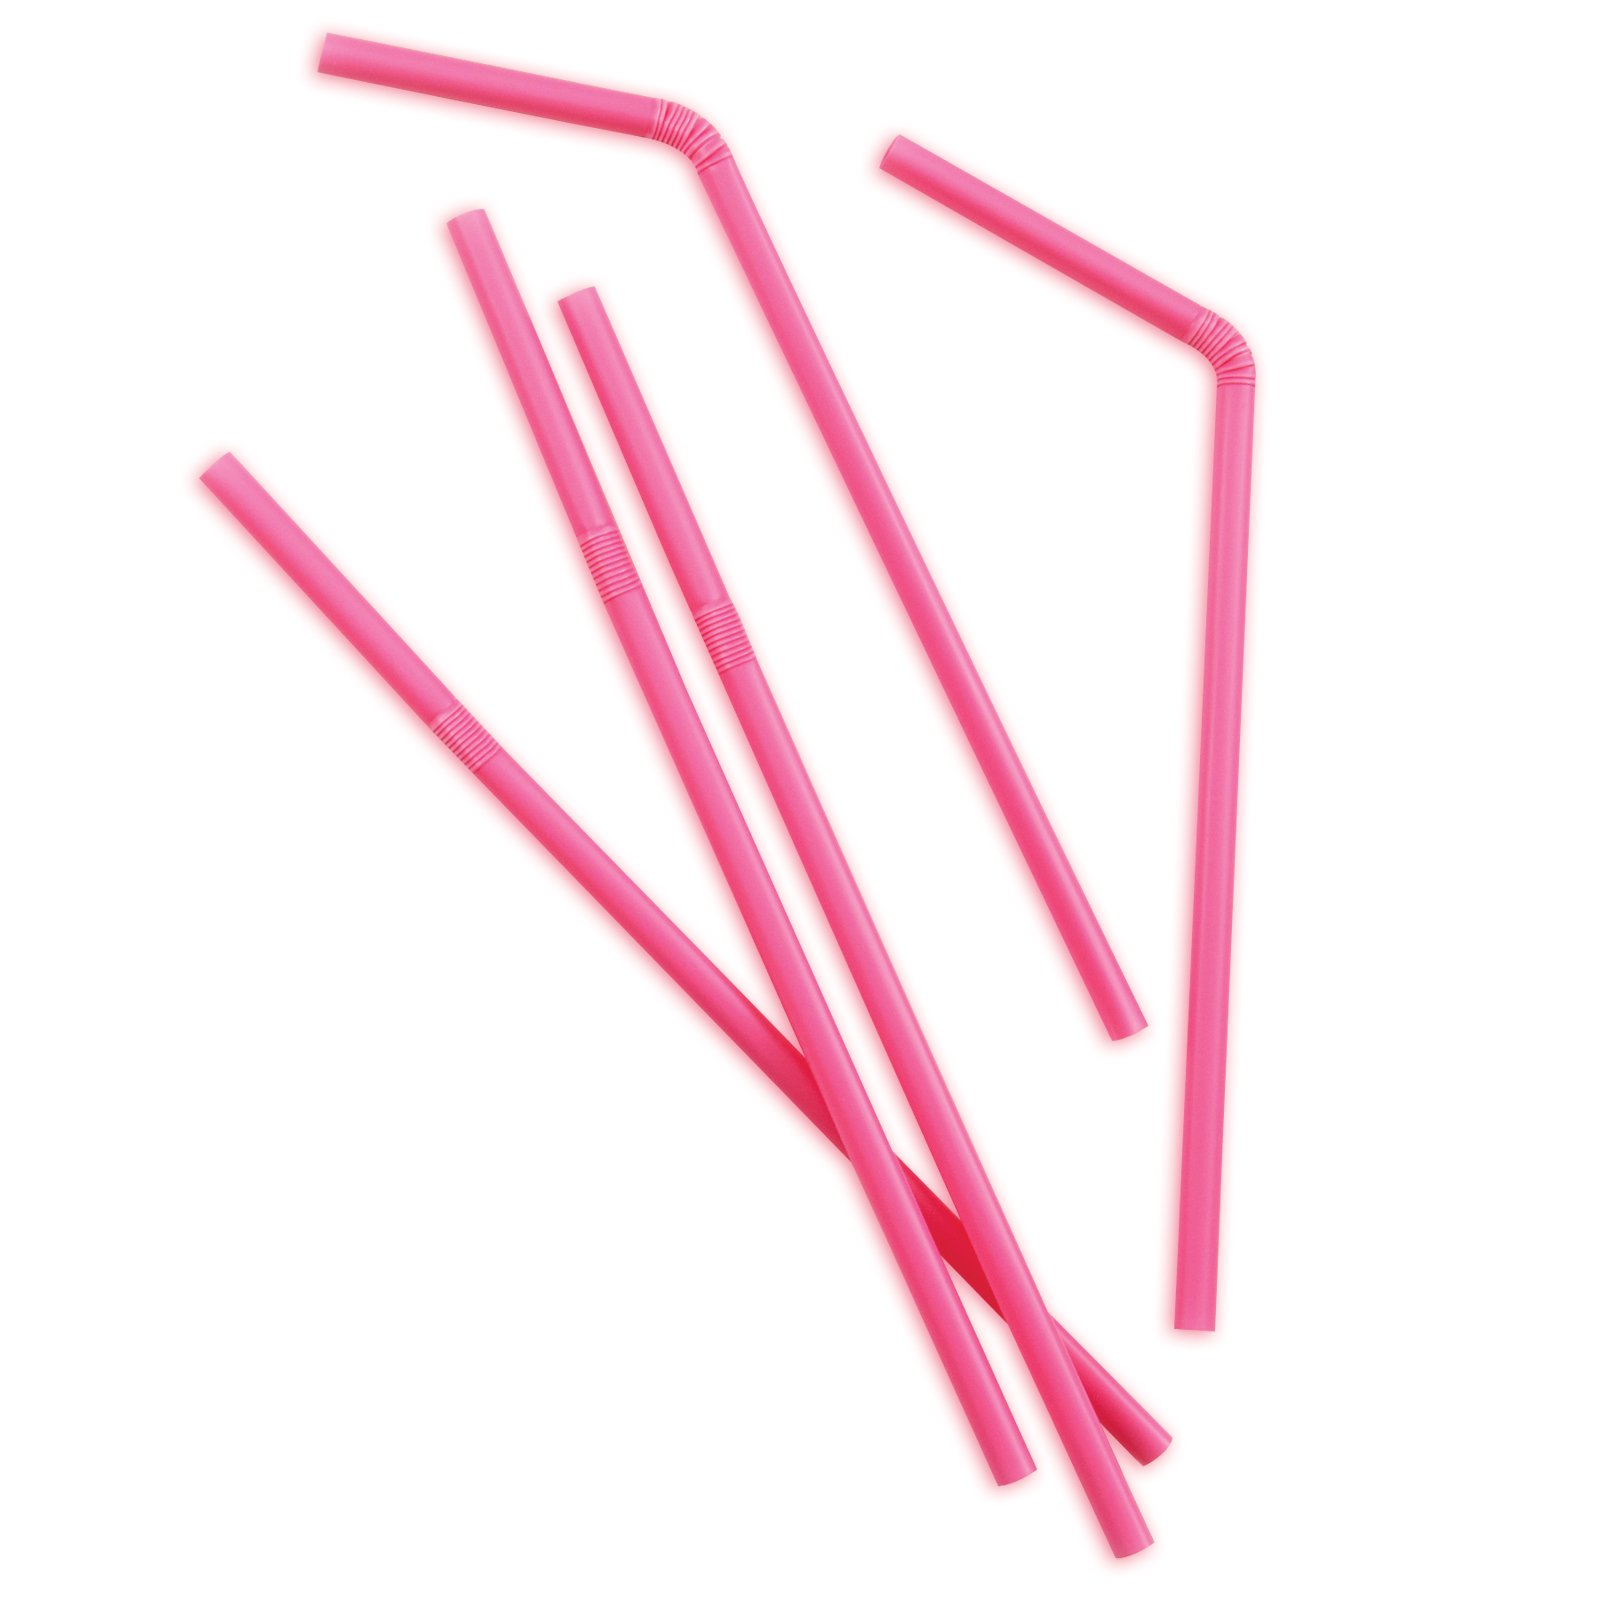 Hot Pink Flex Straws (50 count)